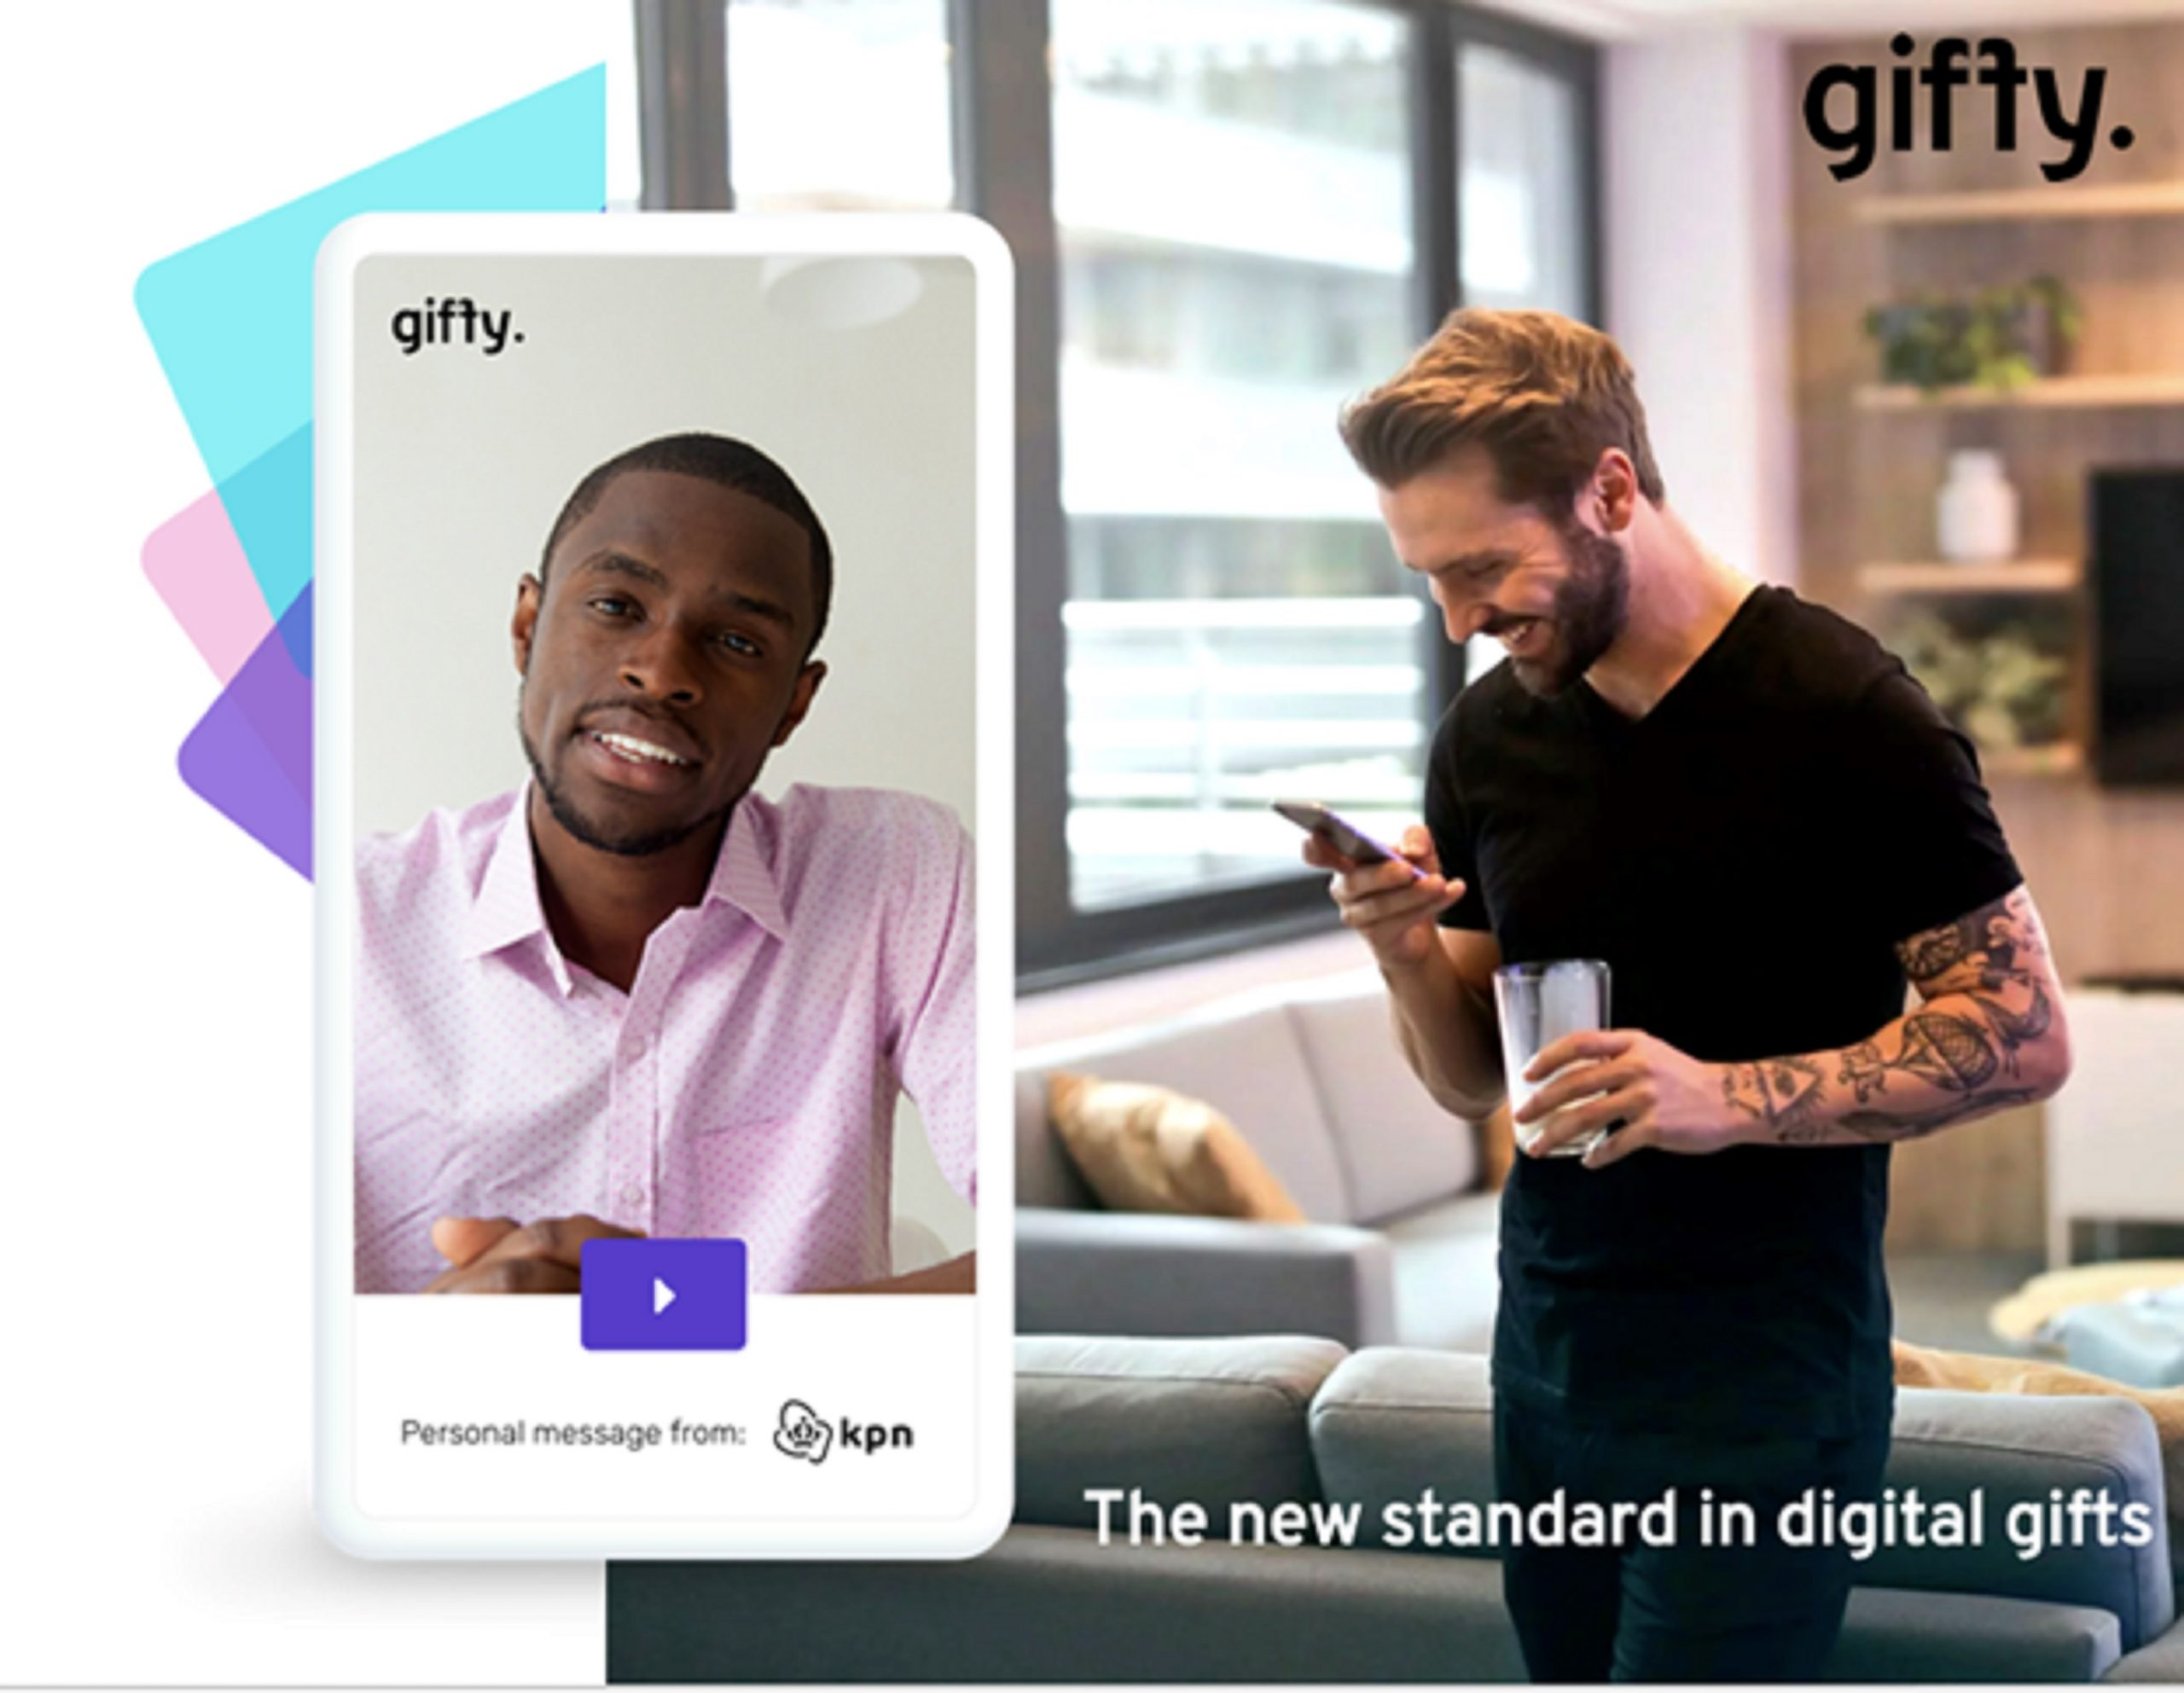 Giffy showcase their modern gift experience that is Personal, Digital and Durable